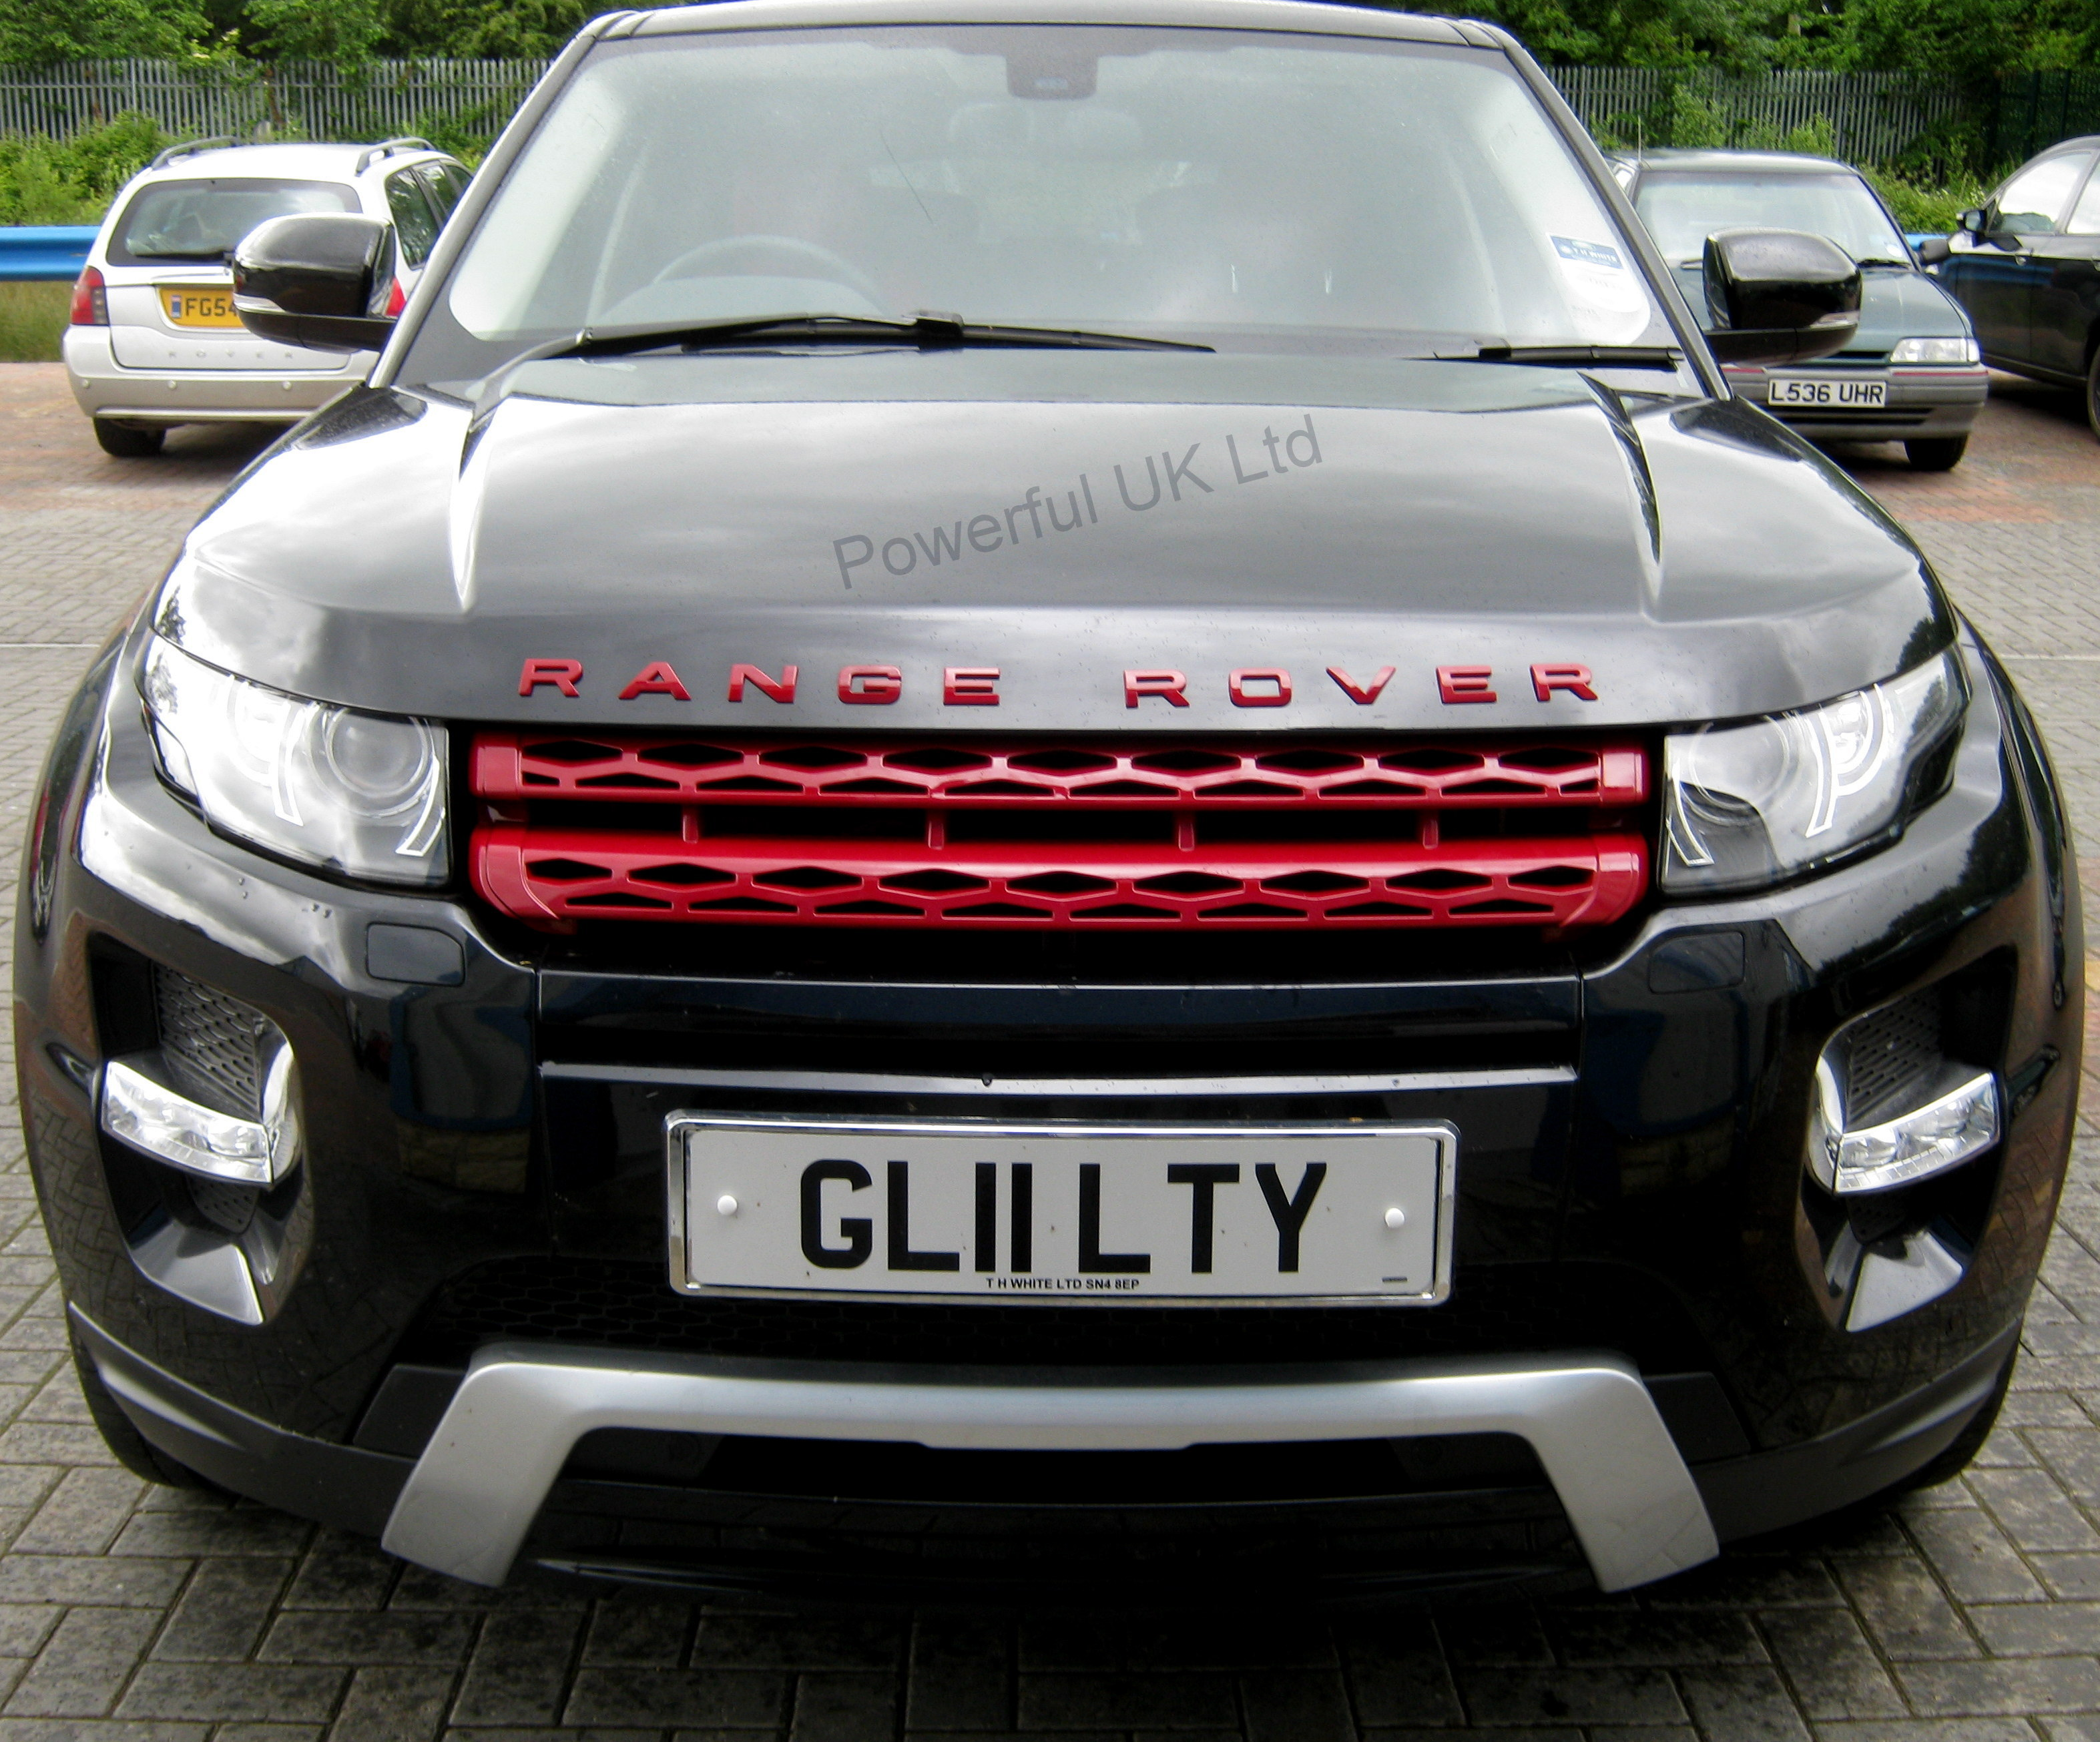 RED front grille upgrade for Range Rover Evoque Pure Dynamic